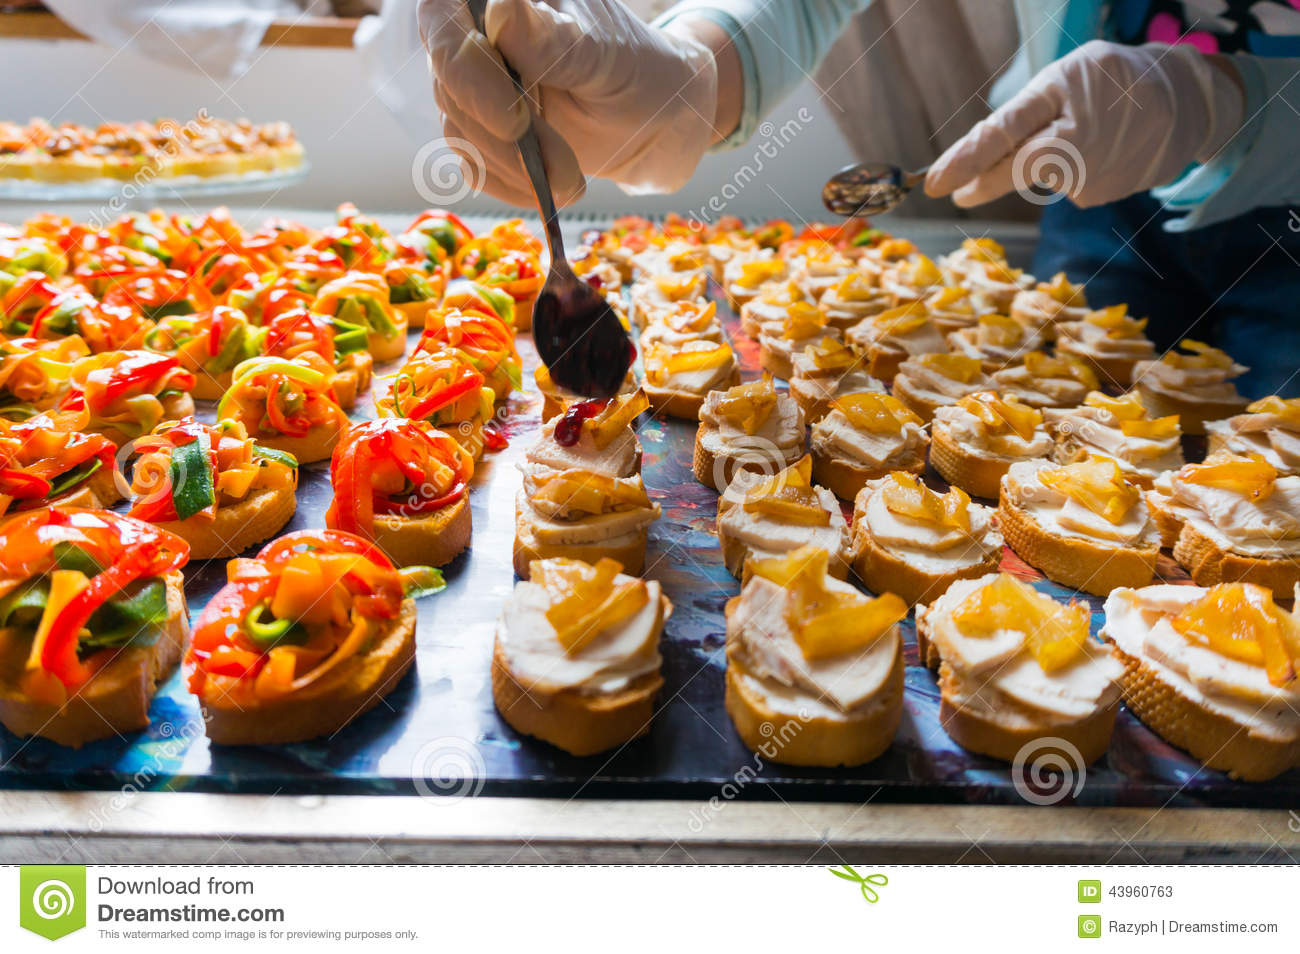 Arranging catering food specialities